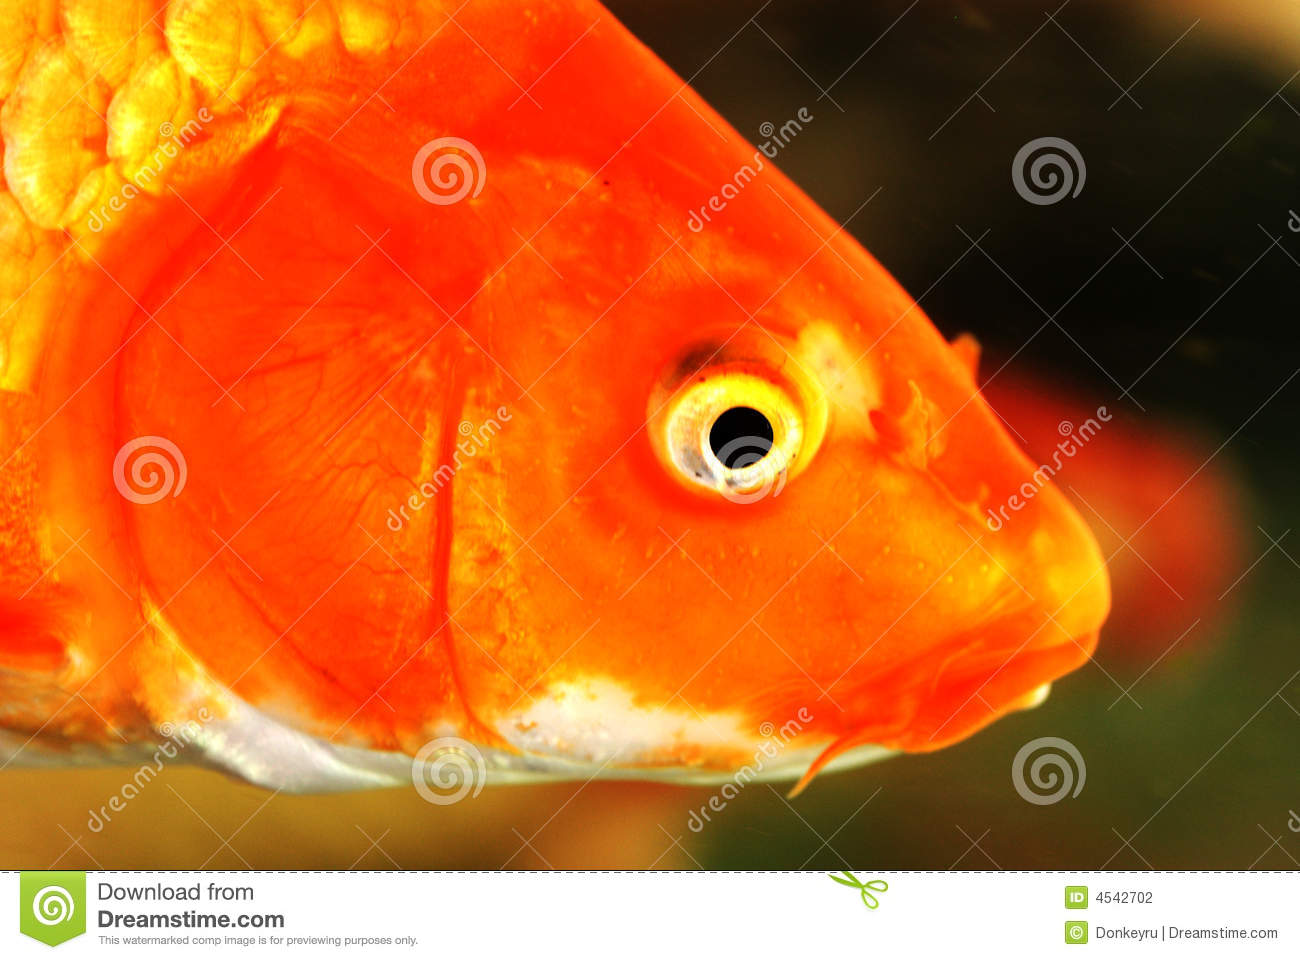 Koi fish head stock photo. Image of peace, ornamental - 4542702